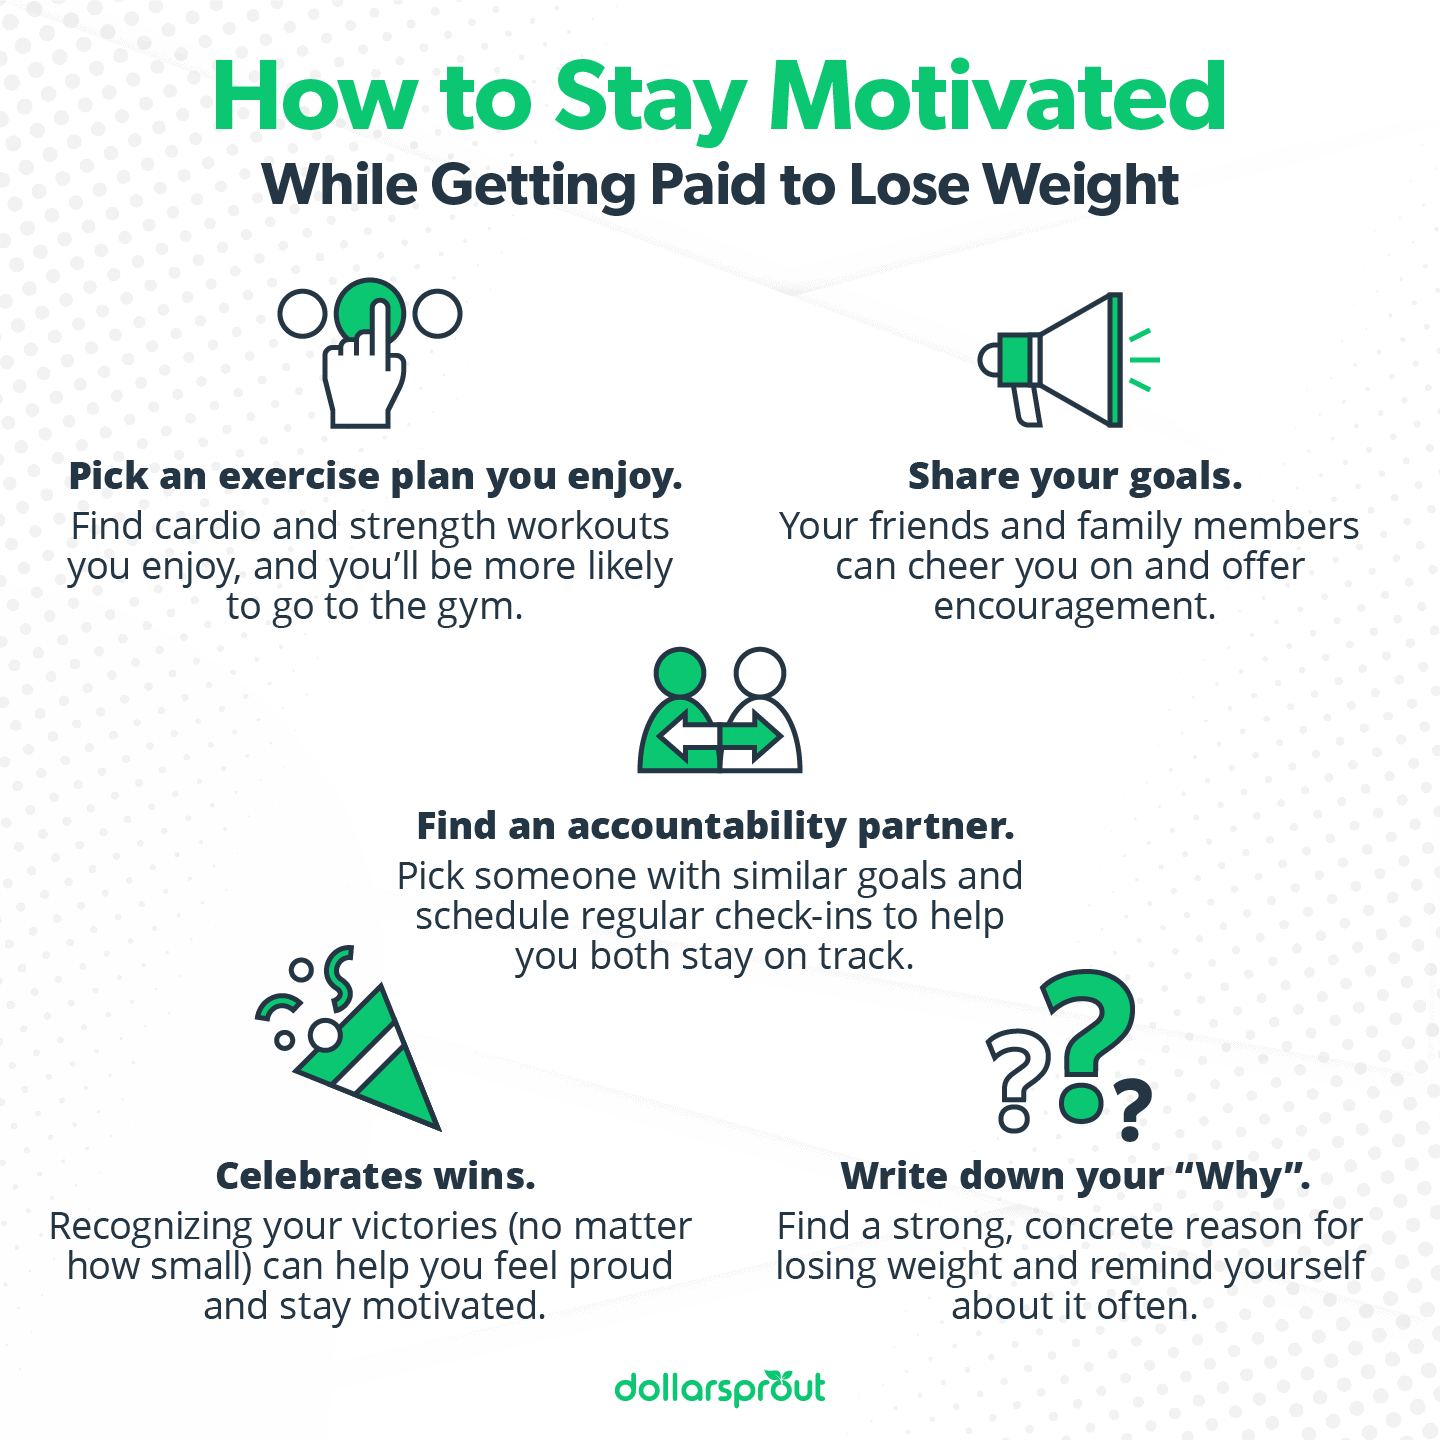 How to stay motivated while getting paid to loose weight